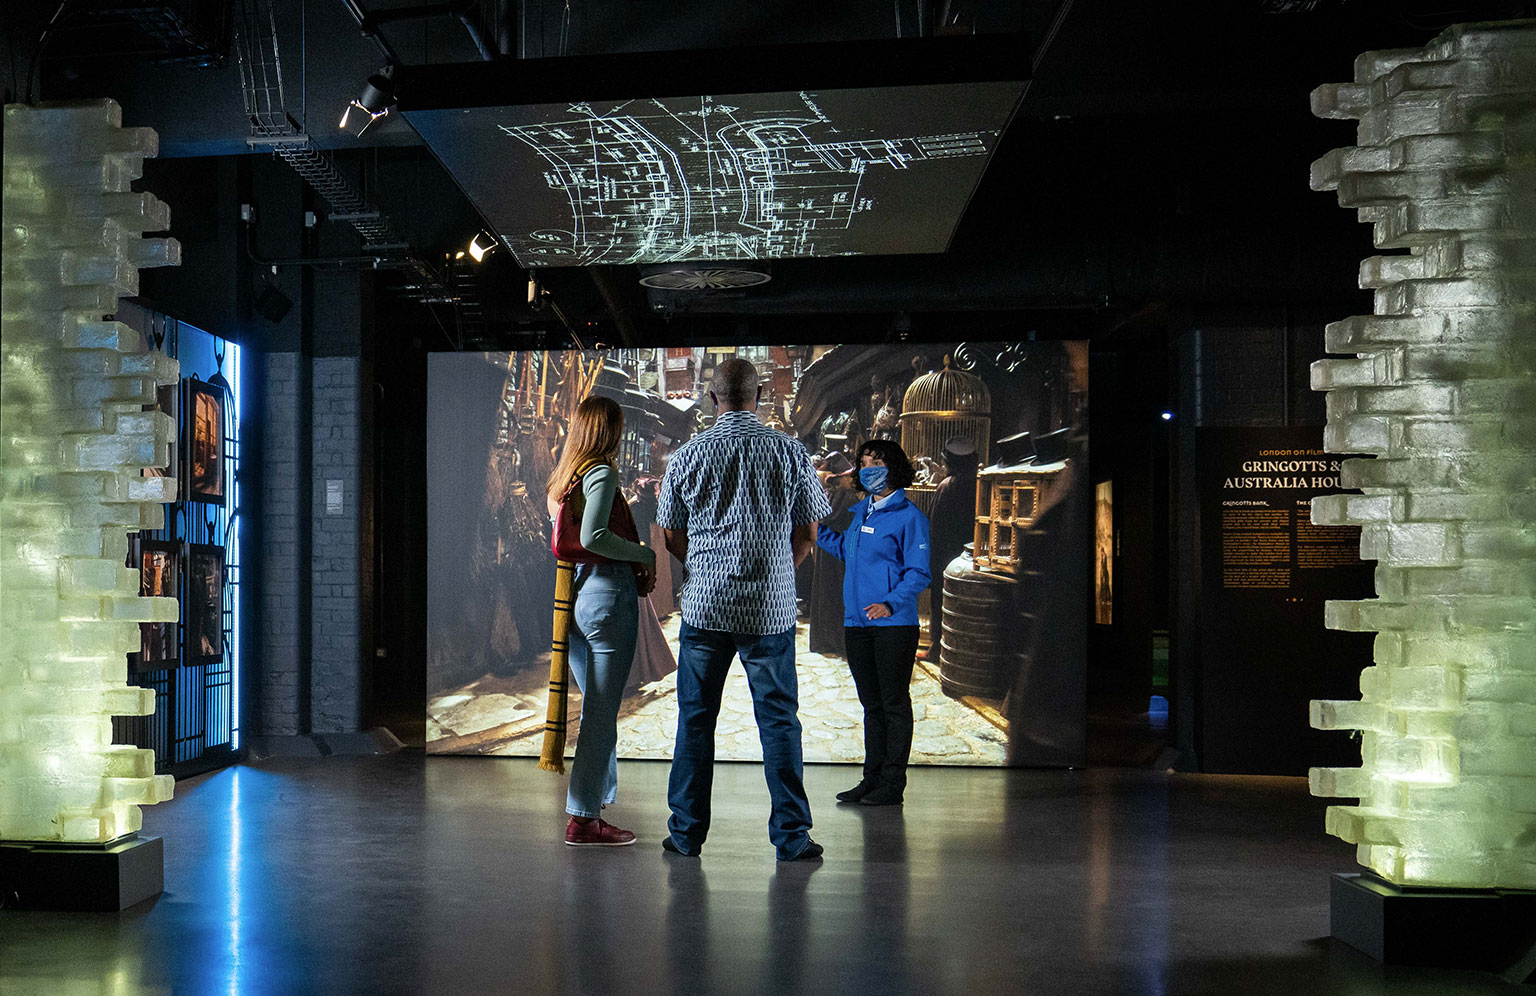 The Harry Potter Photographic Exhibition - Diagon Alley